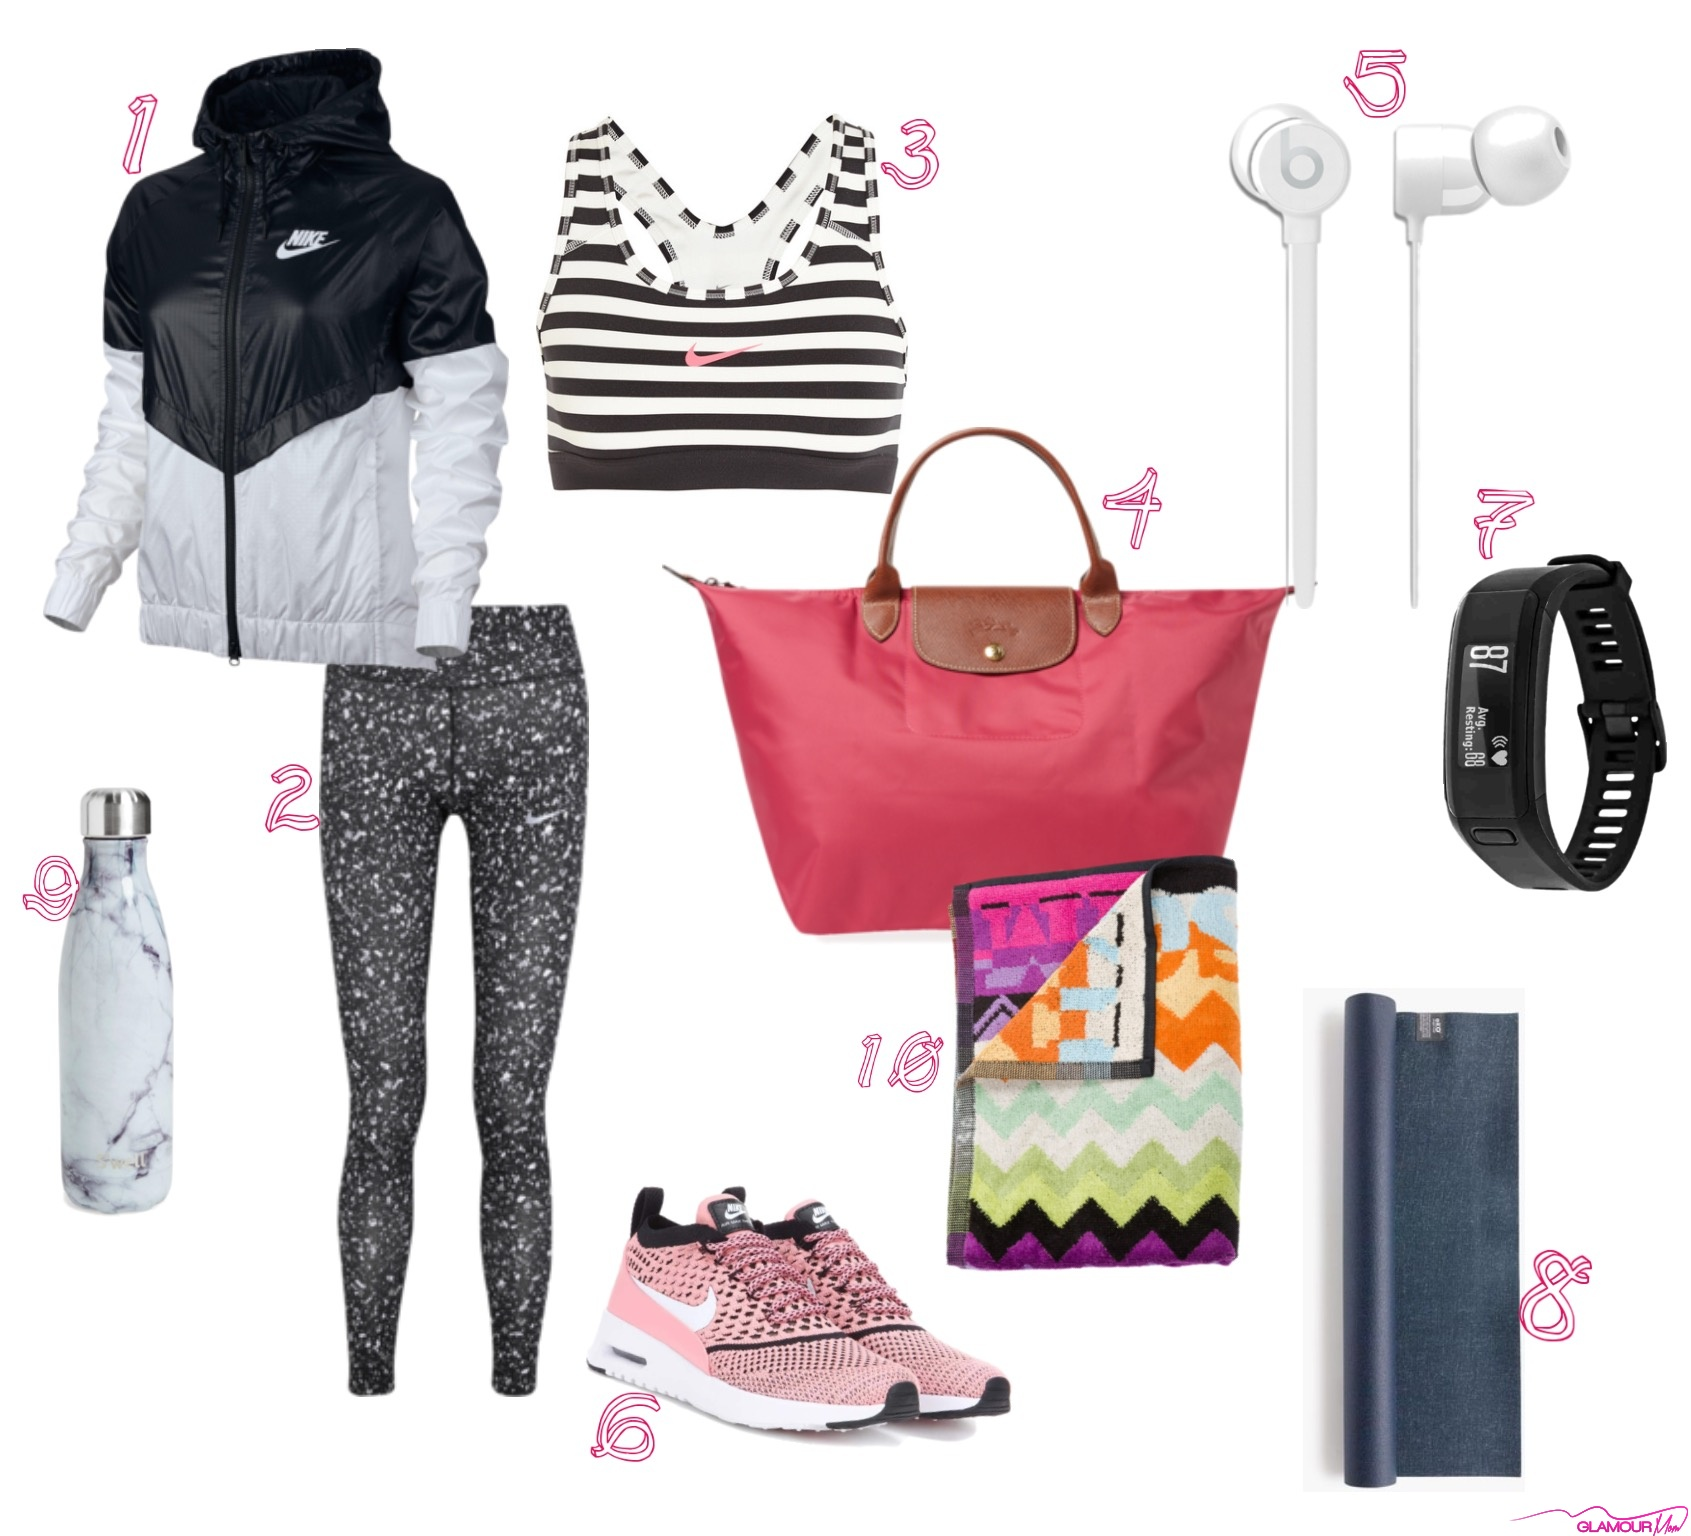 Spring Workout Gear That Will Have You Running To The Gym